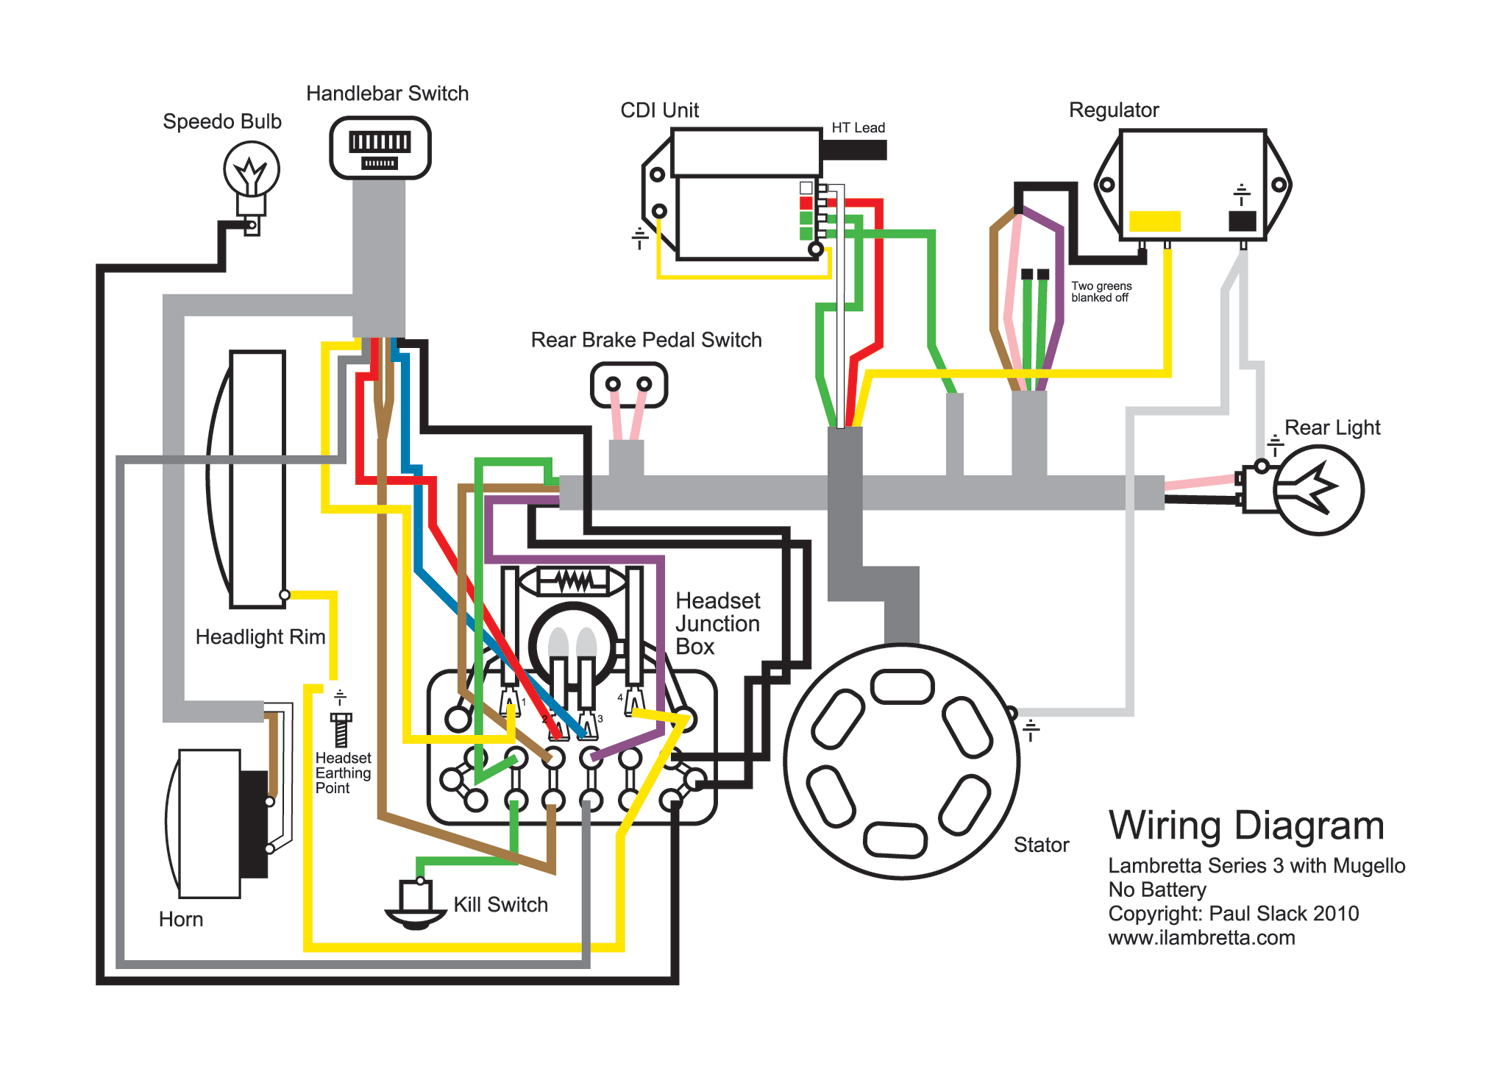 [DIAGRAM_4PO]  A6A40 6 Volt Dc Cdi Wiring Diagram | Wiring Library | 12 Volt Dc Switch Wiring Diagram |  | Wiring Library